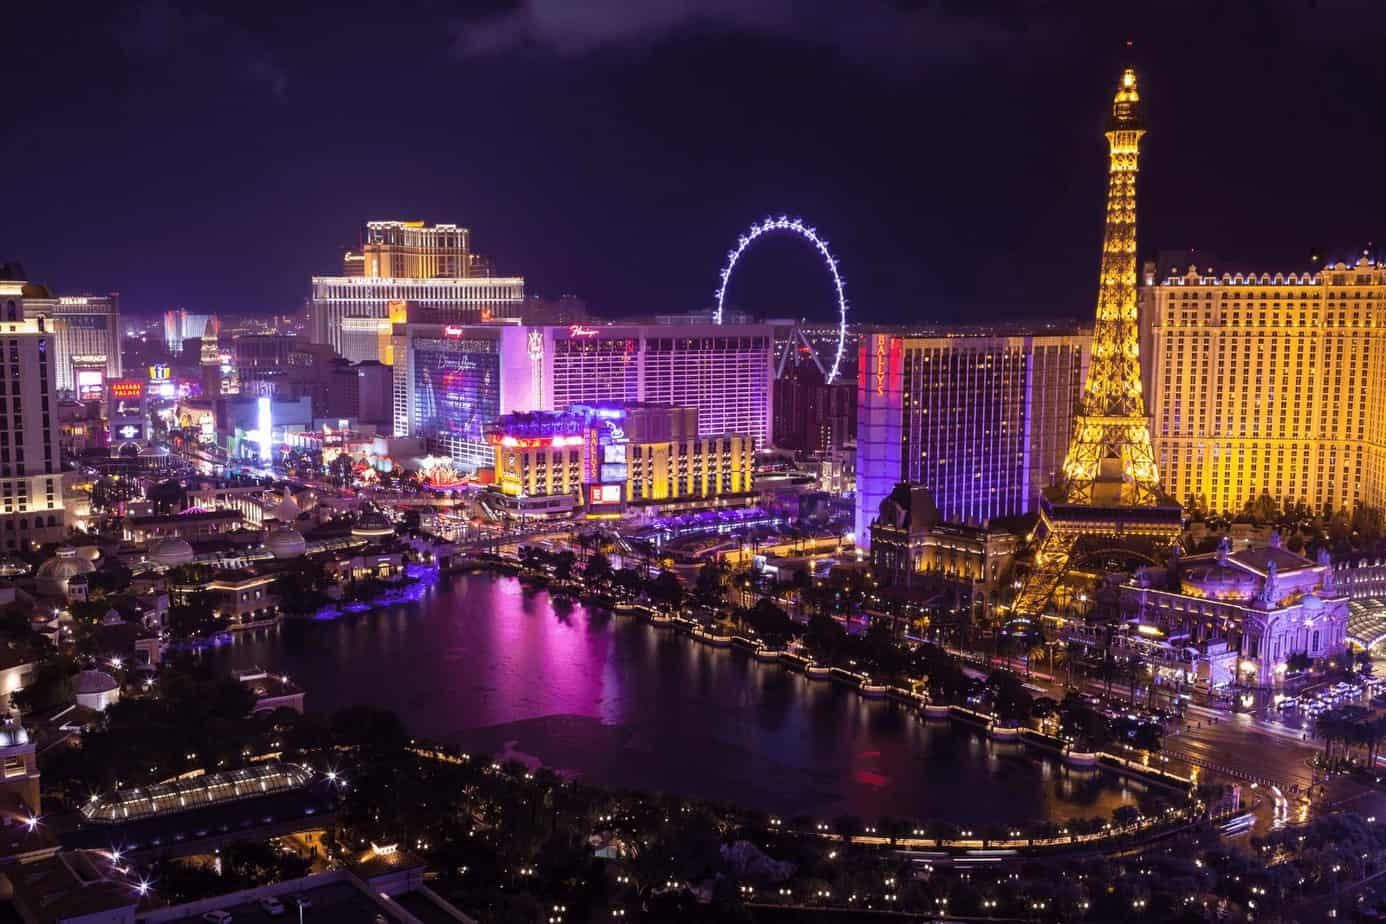 a great view of Las Vegas city night life